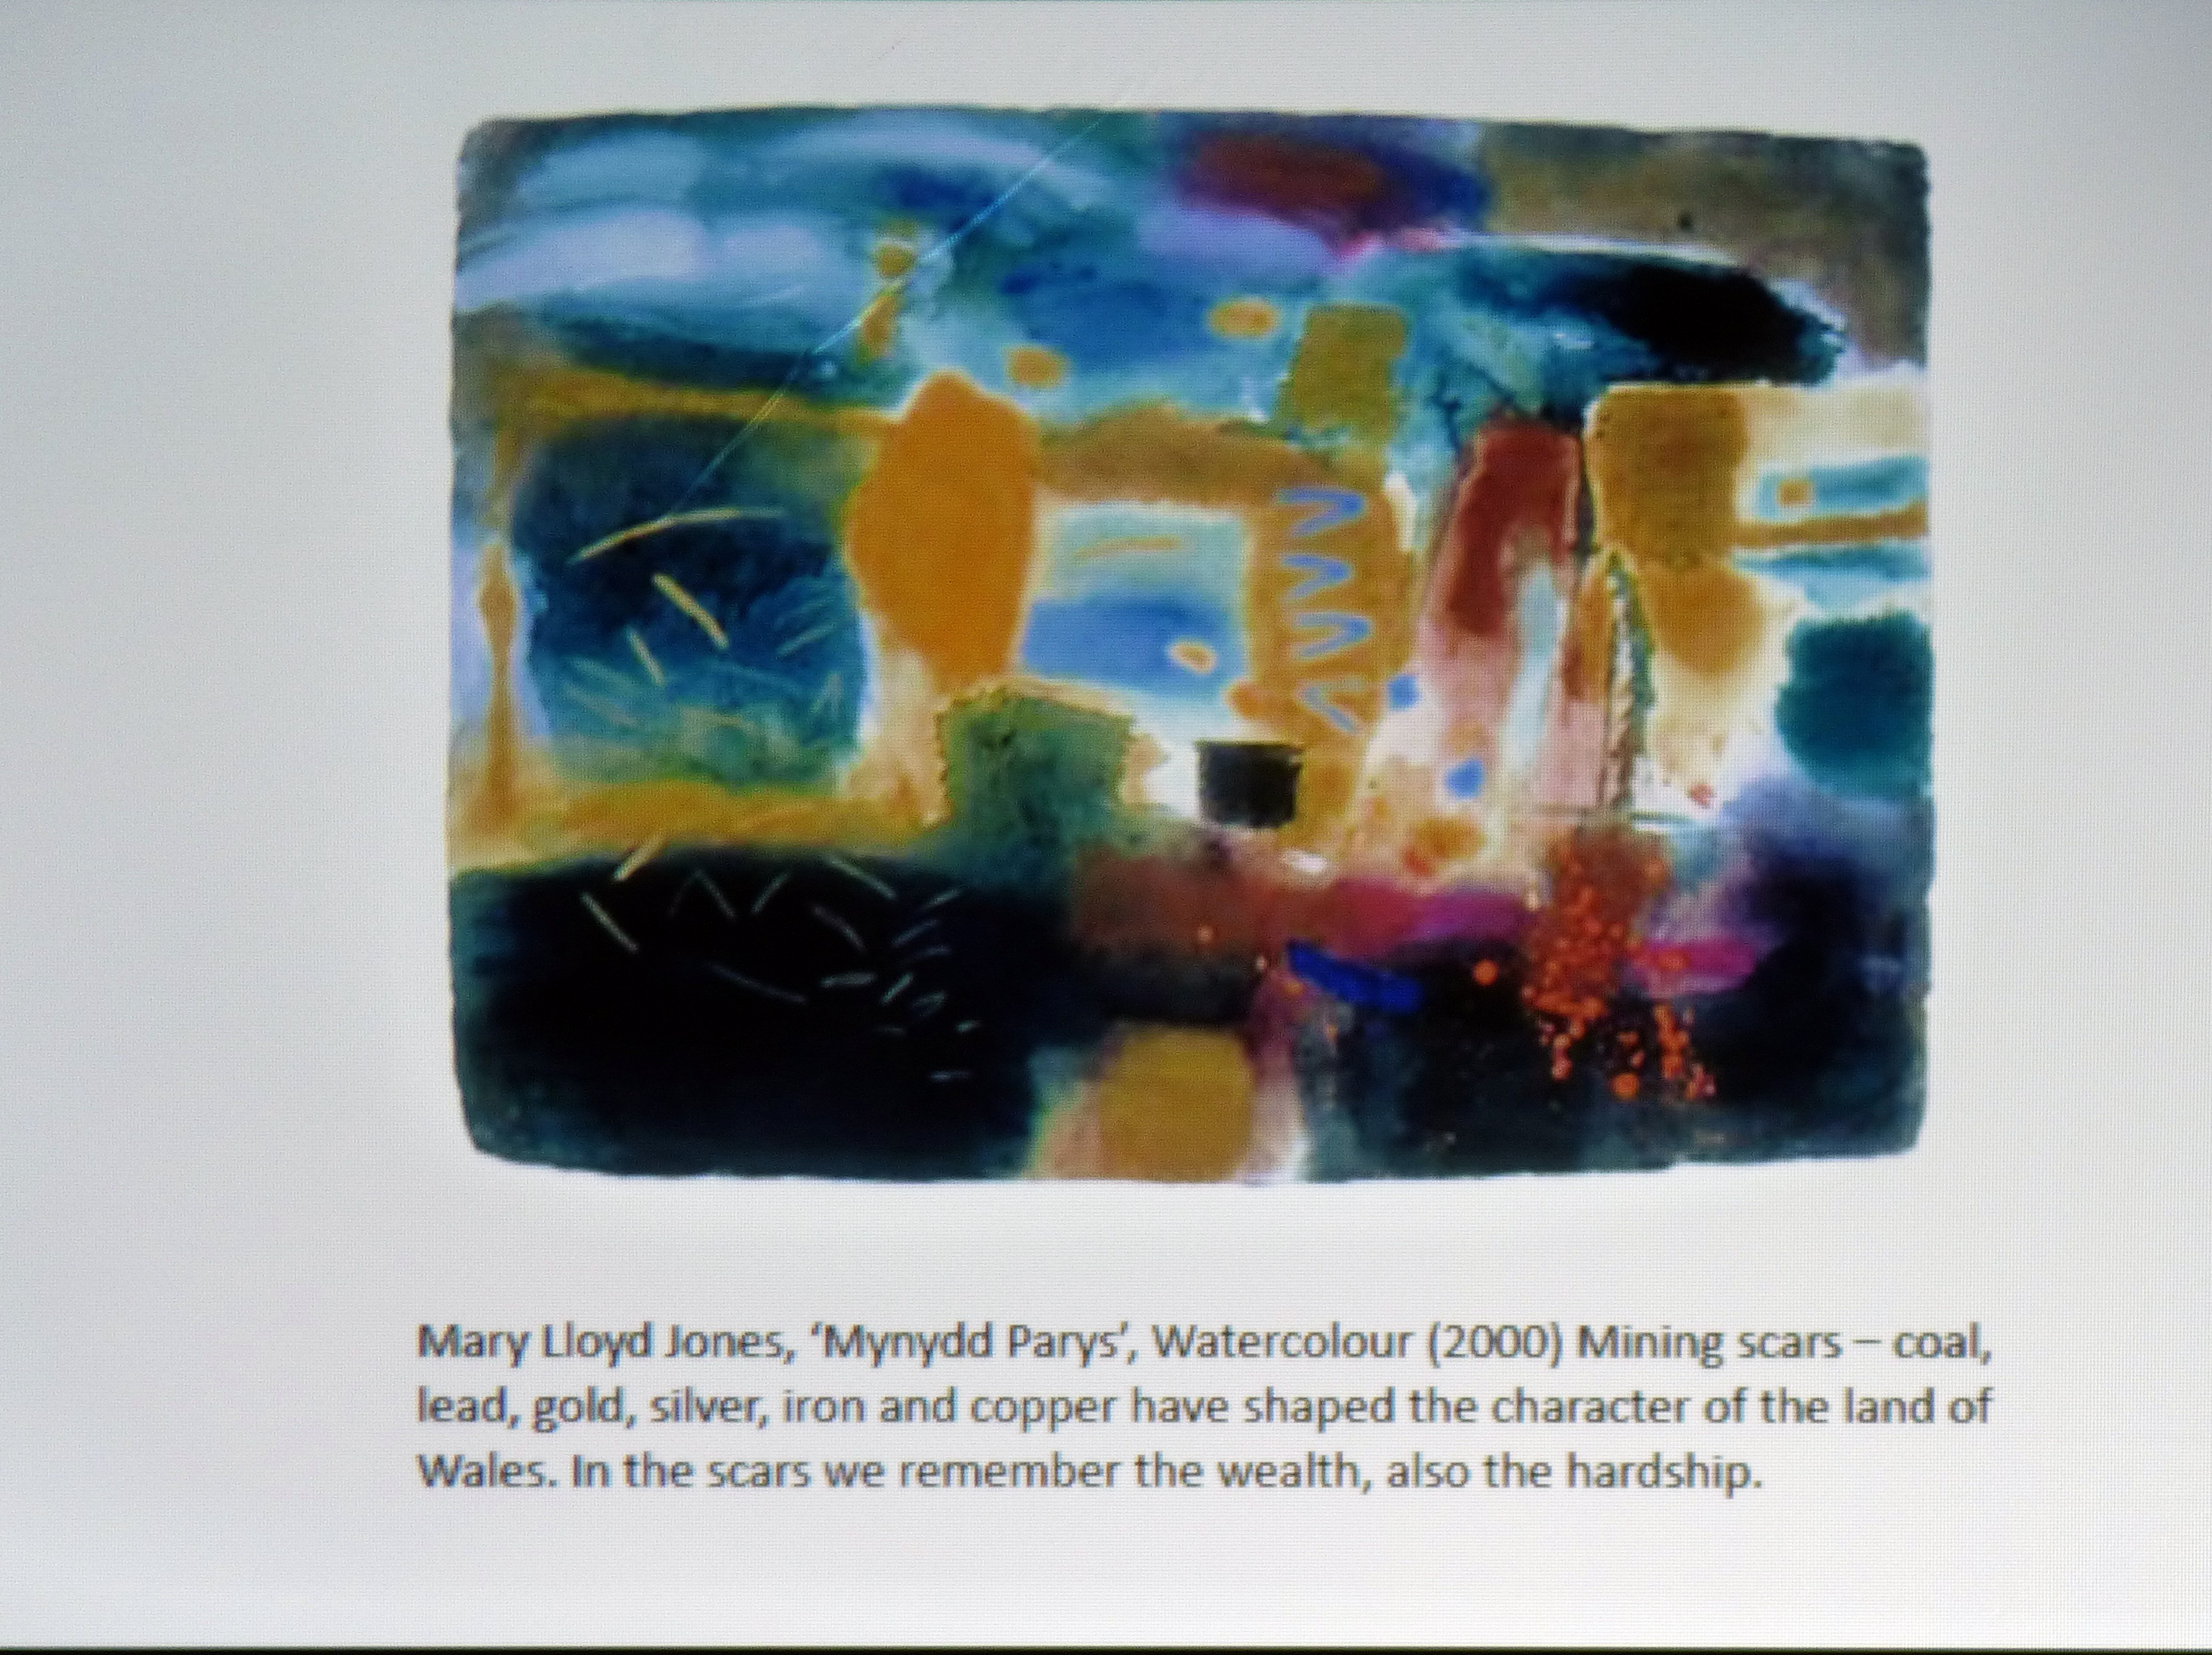 paintings by Mary LLoyd Jones are an influence in Hanna Roberts work